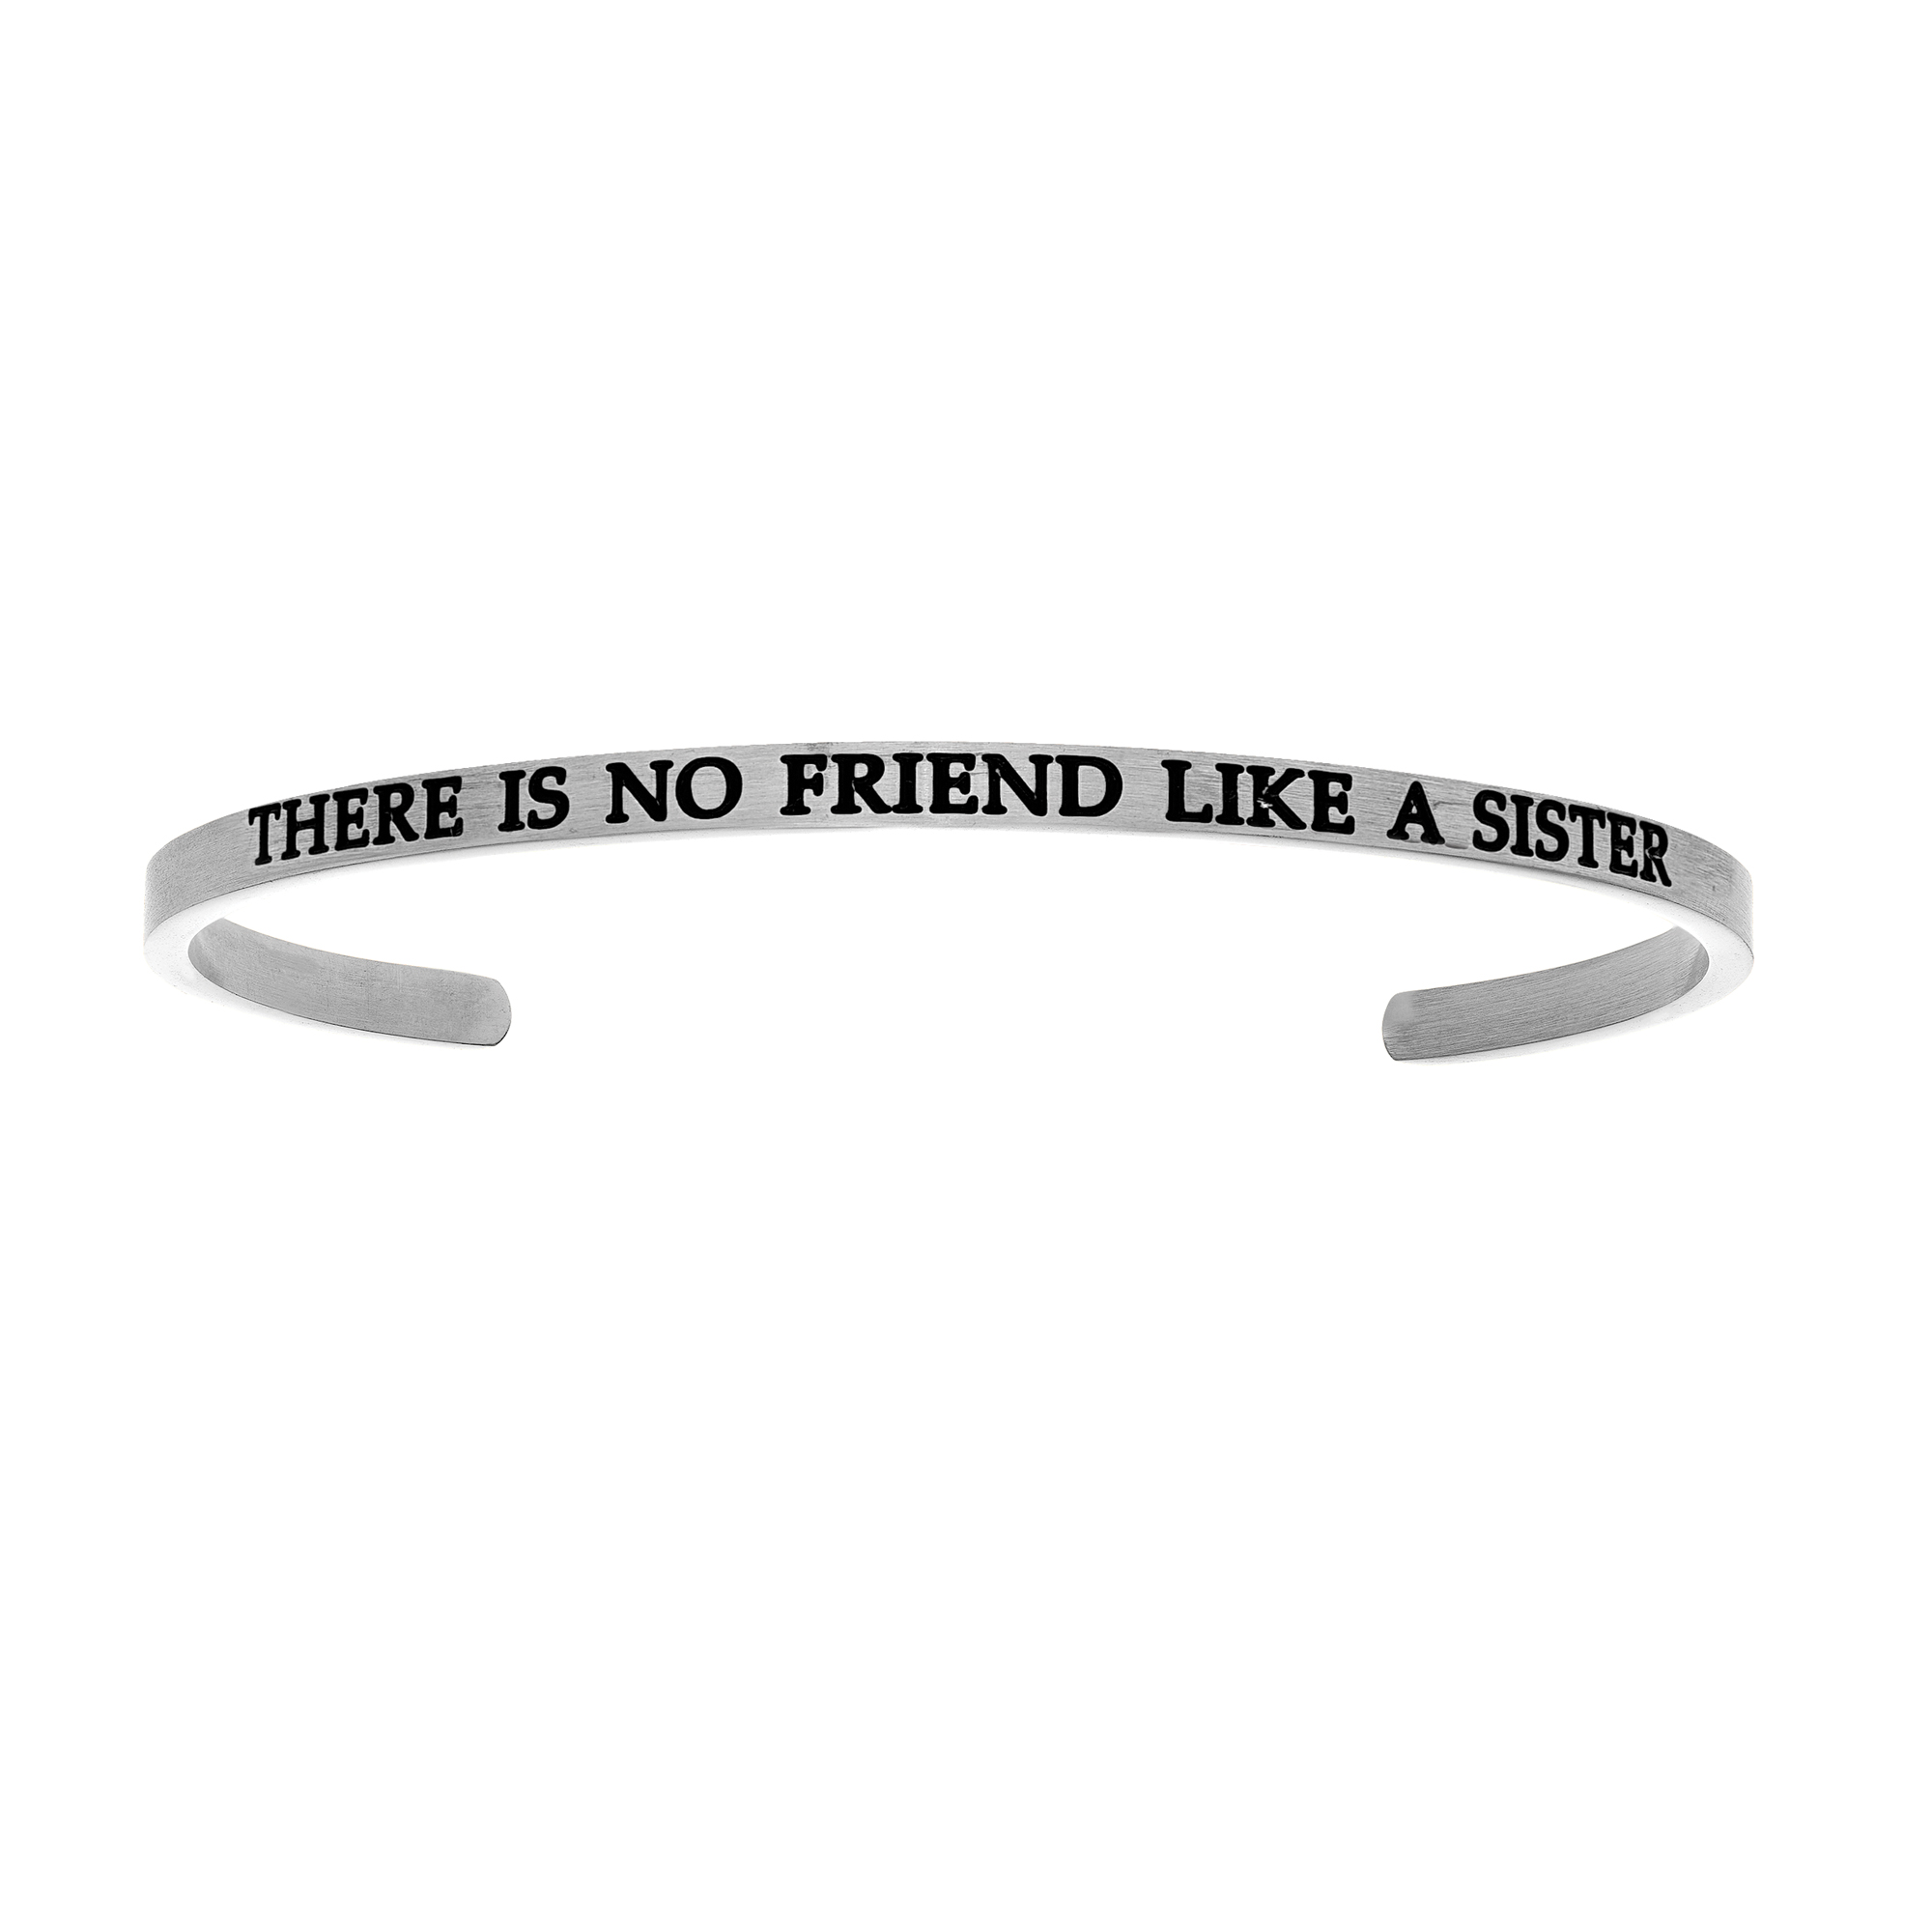 Intuitions Stainless Steel THERE IS NO FRIEND LIKE A SISTER Diamond Accent Cuff Bangle Bracelet, 7″